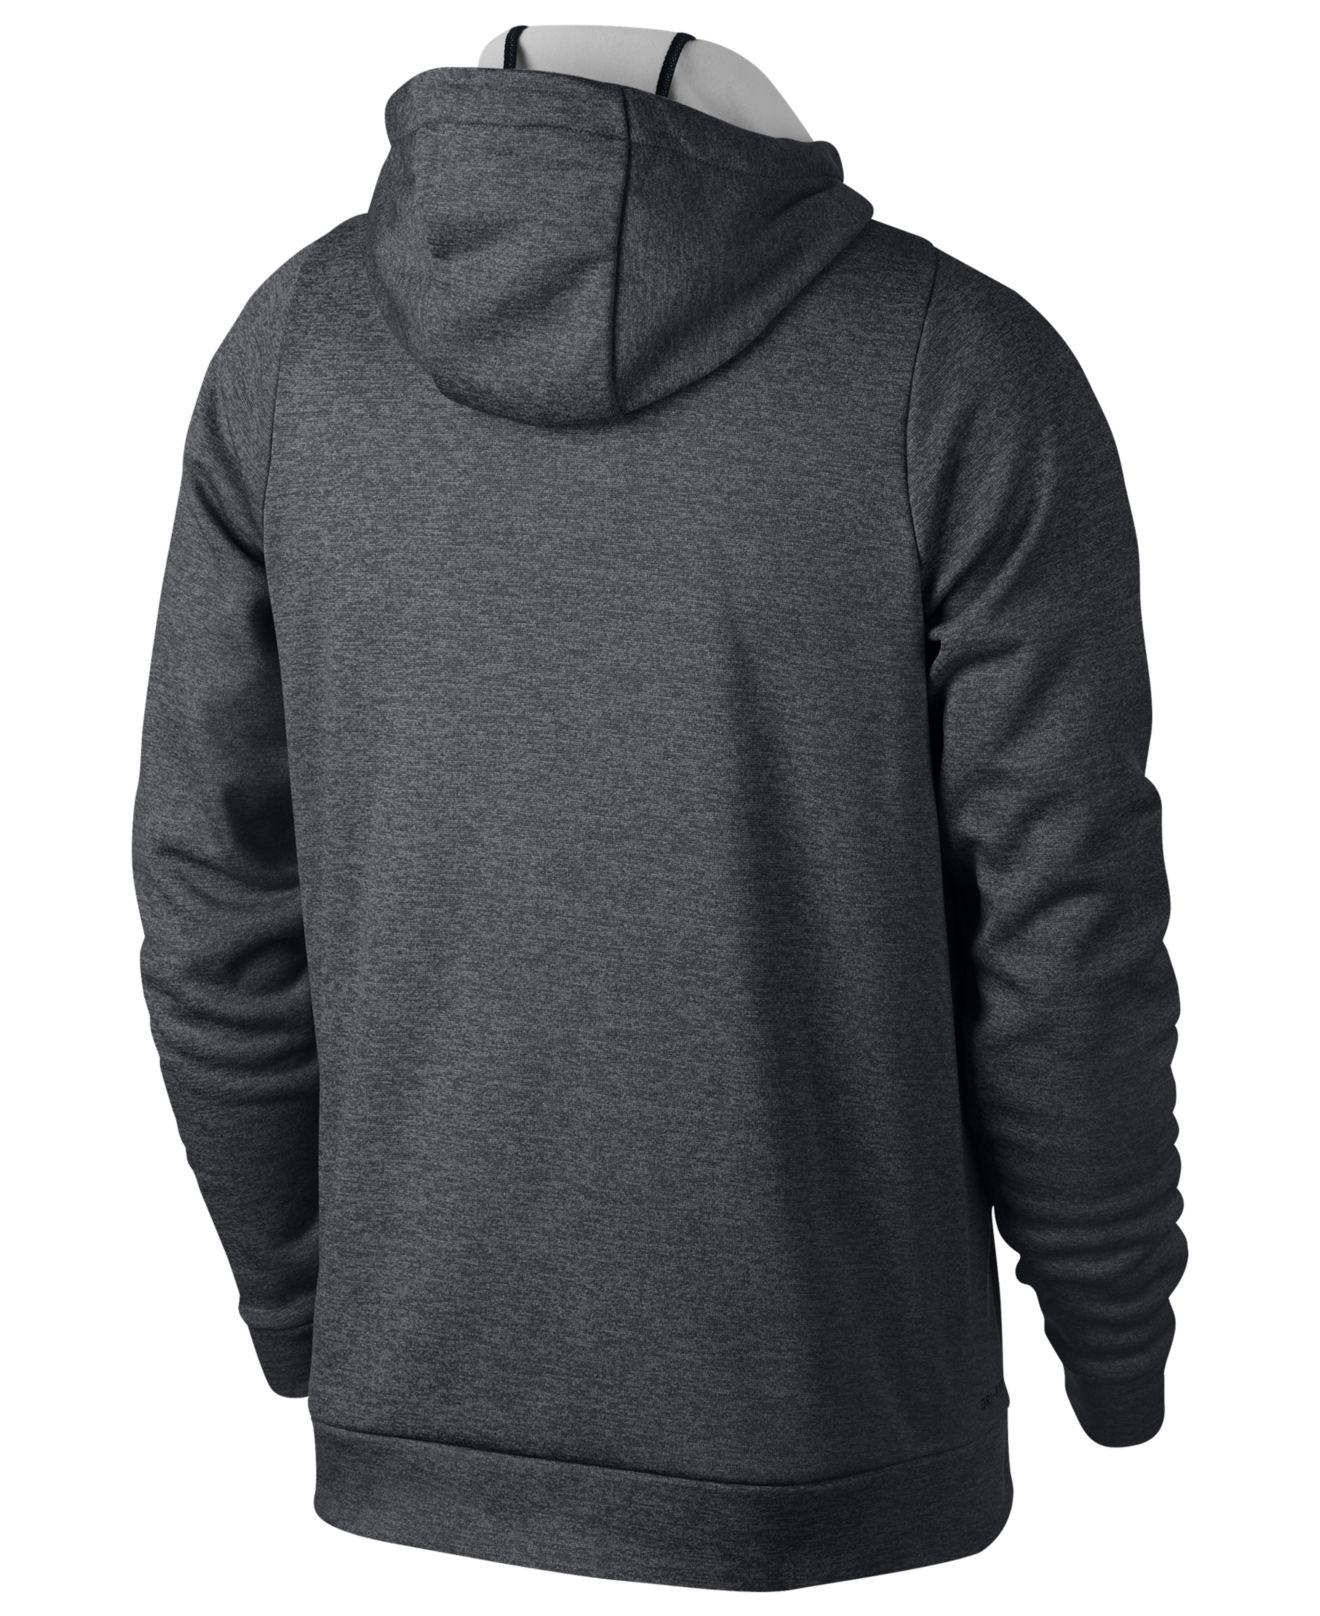 e2459cff Lyst - Nike Therma Training Hoodie in Gray for Men - Save 41%